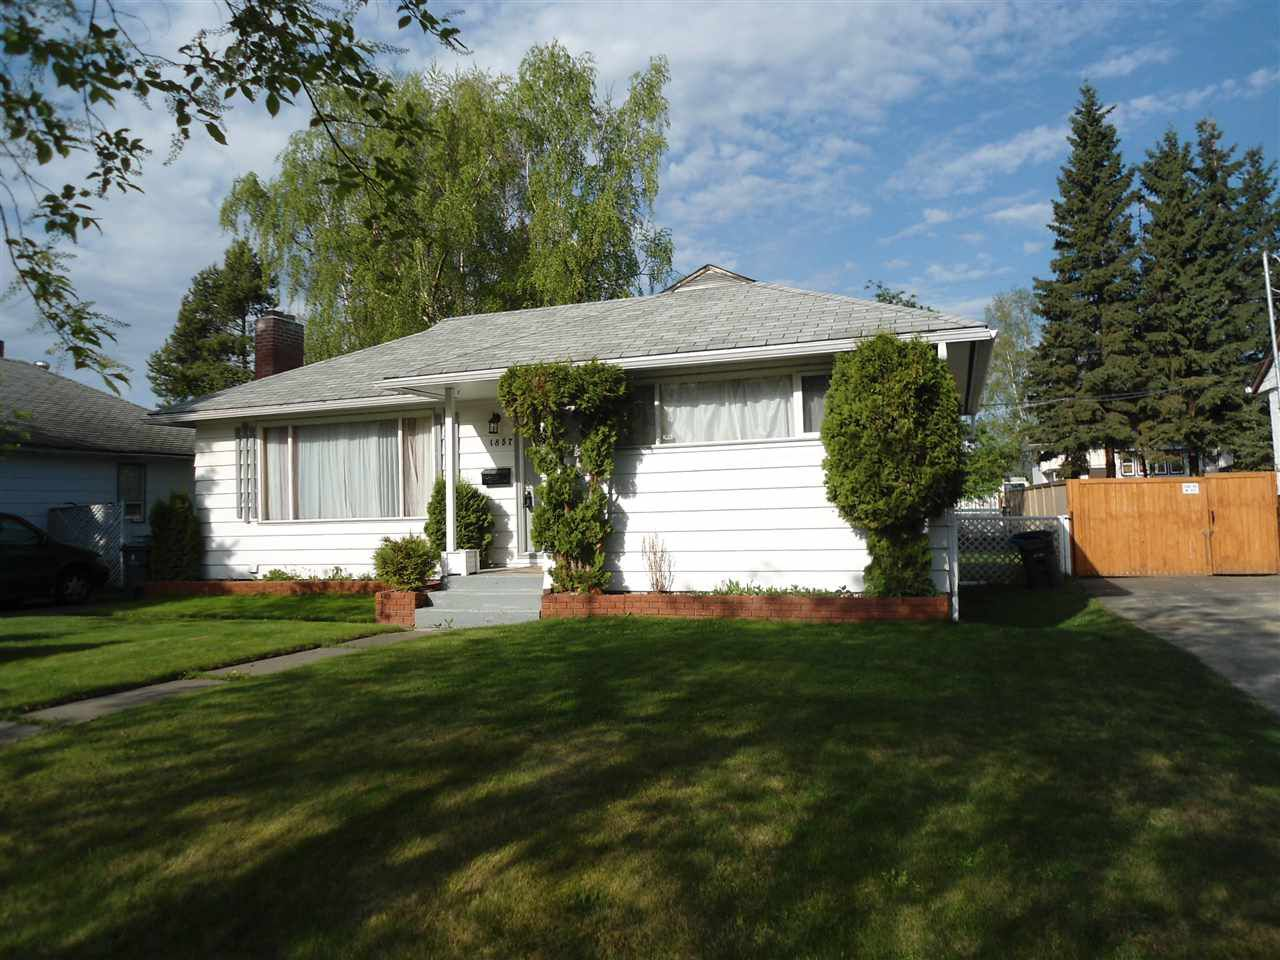 Main Photo: 1857 NORWOOD Street in Prince George: Connaught House for sale (PG City Central (Zone 72))  : MLS®# R2062159